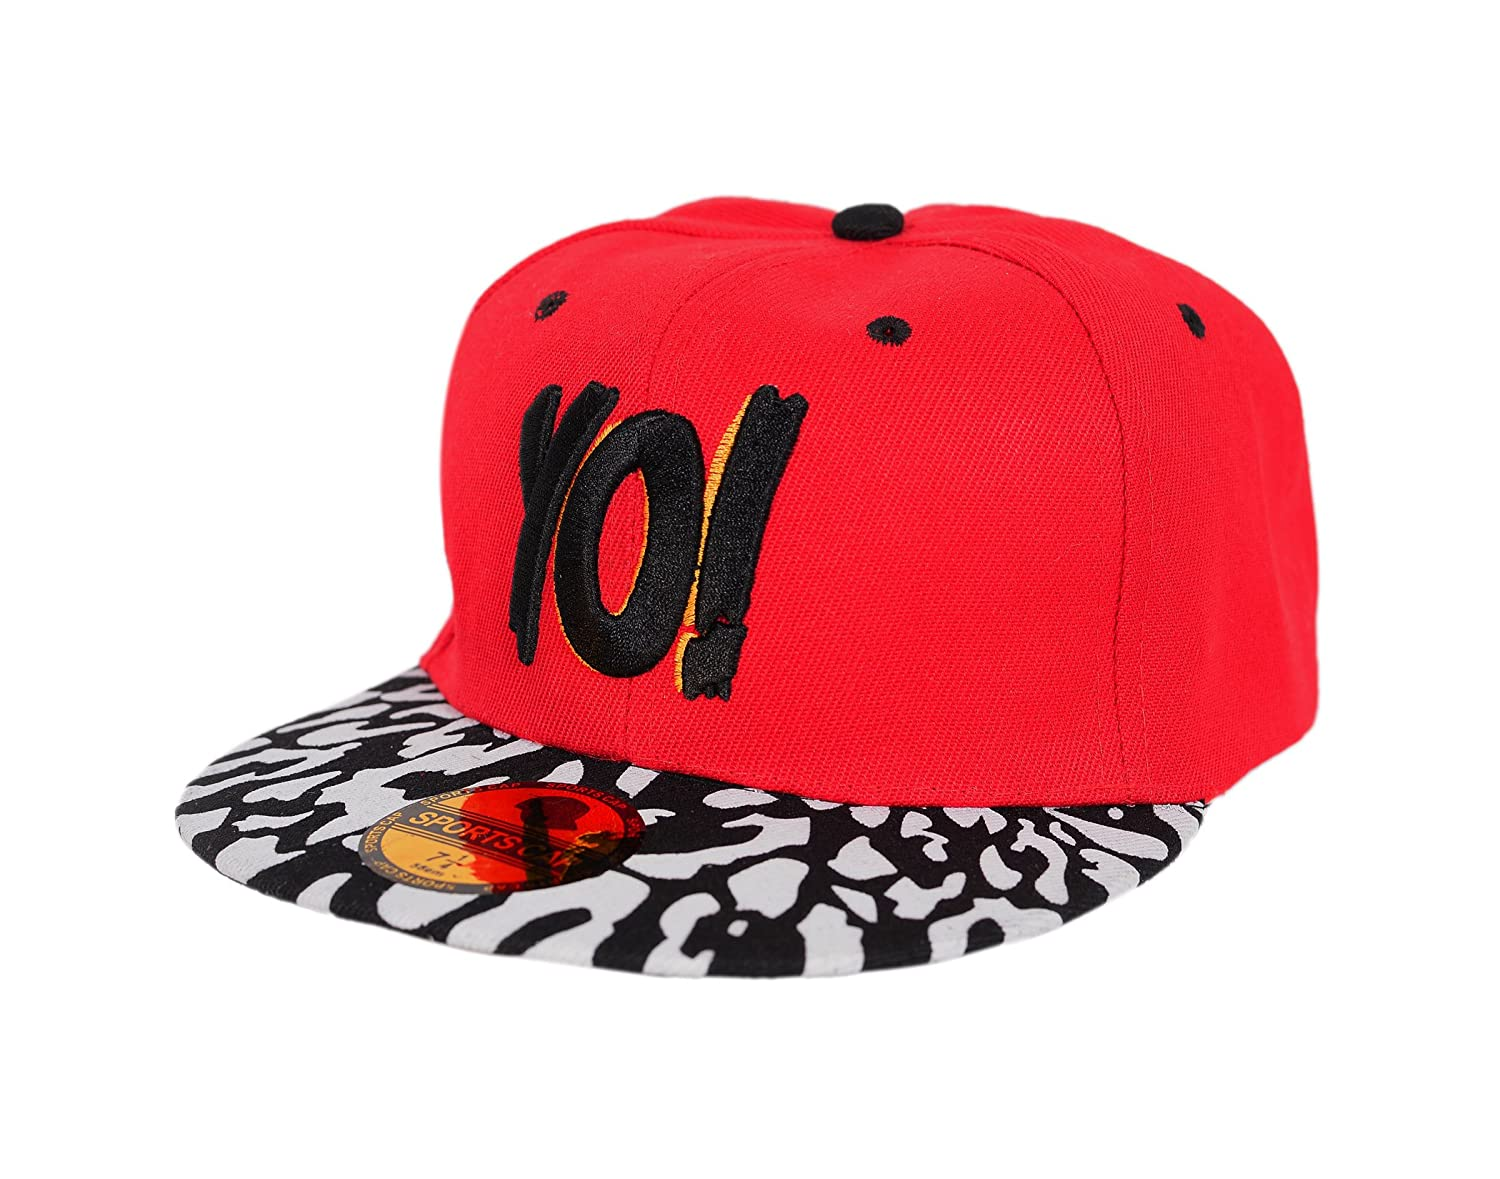 a3f7f27d82016 Krystle Unisex Cotton Red Black YO Hip Hop Snapback Cap  Amazon.in  Clothing    Accessories